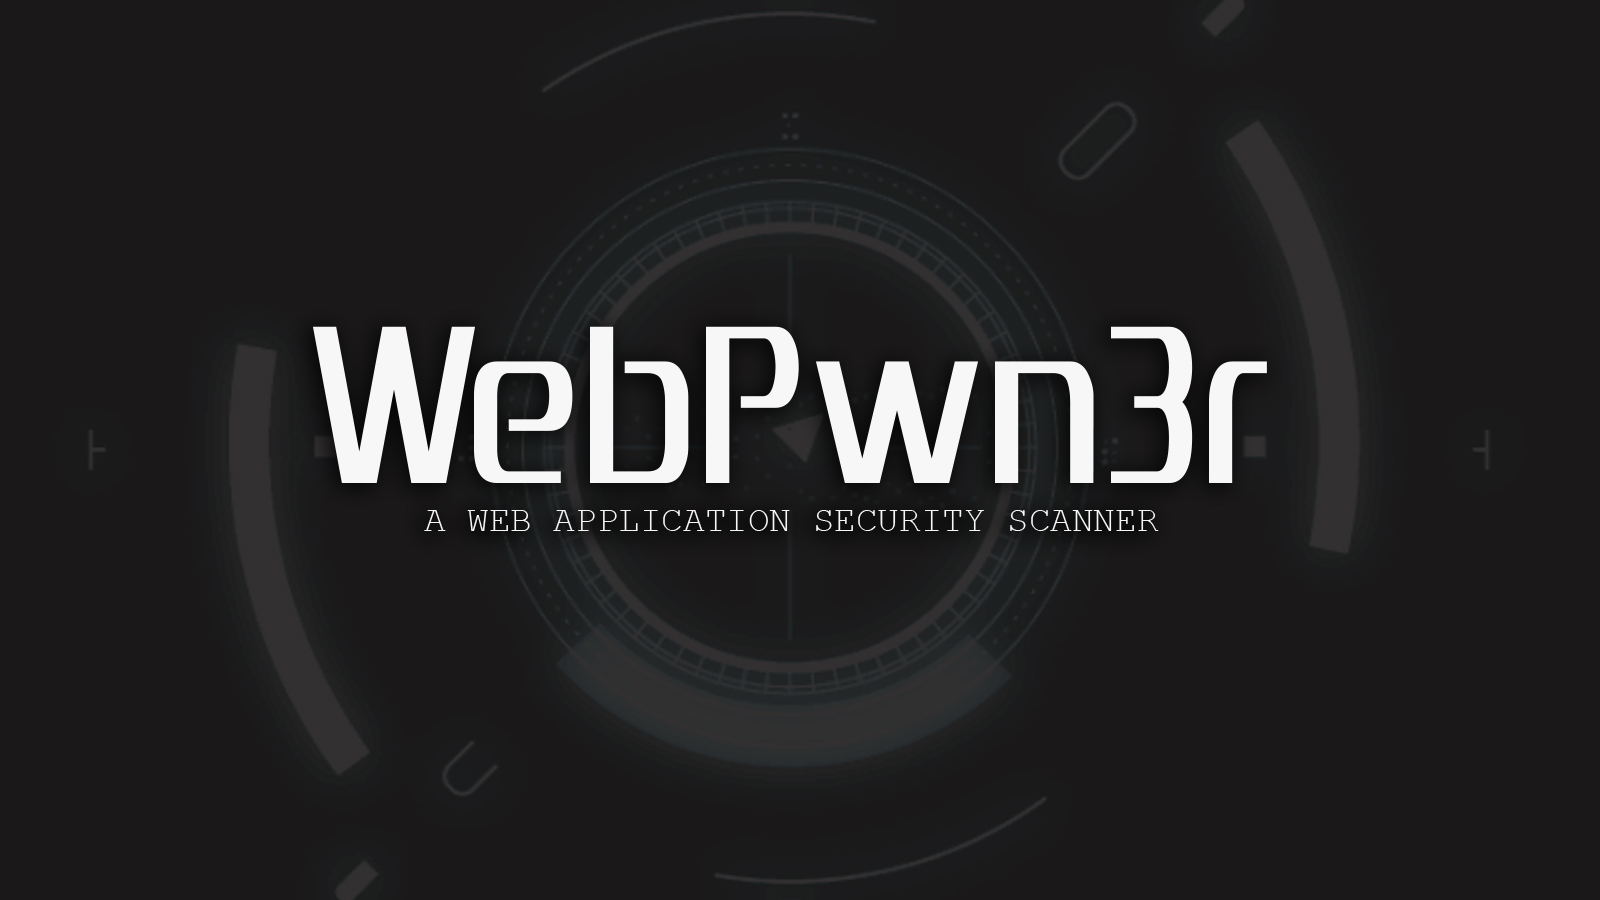 WebPwn3r - A Web Application Security Scanner